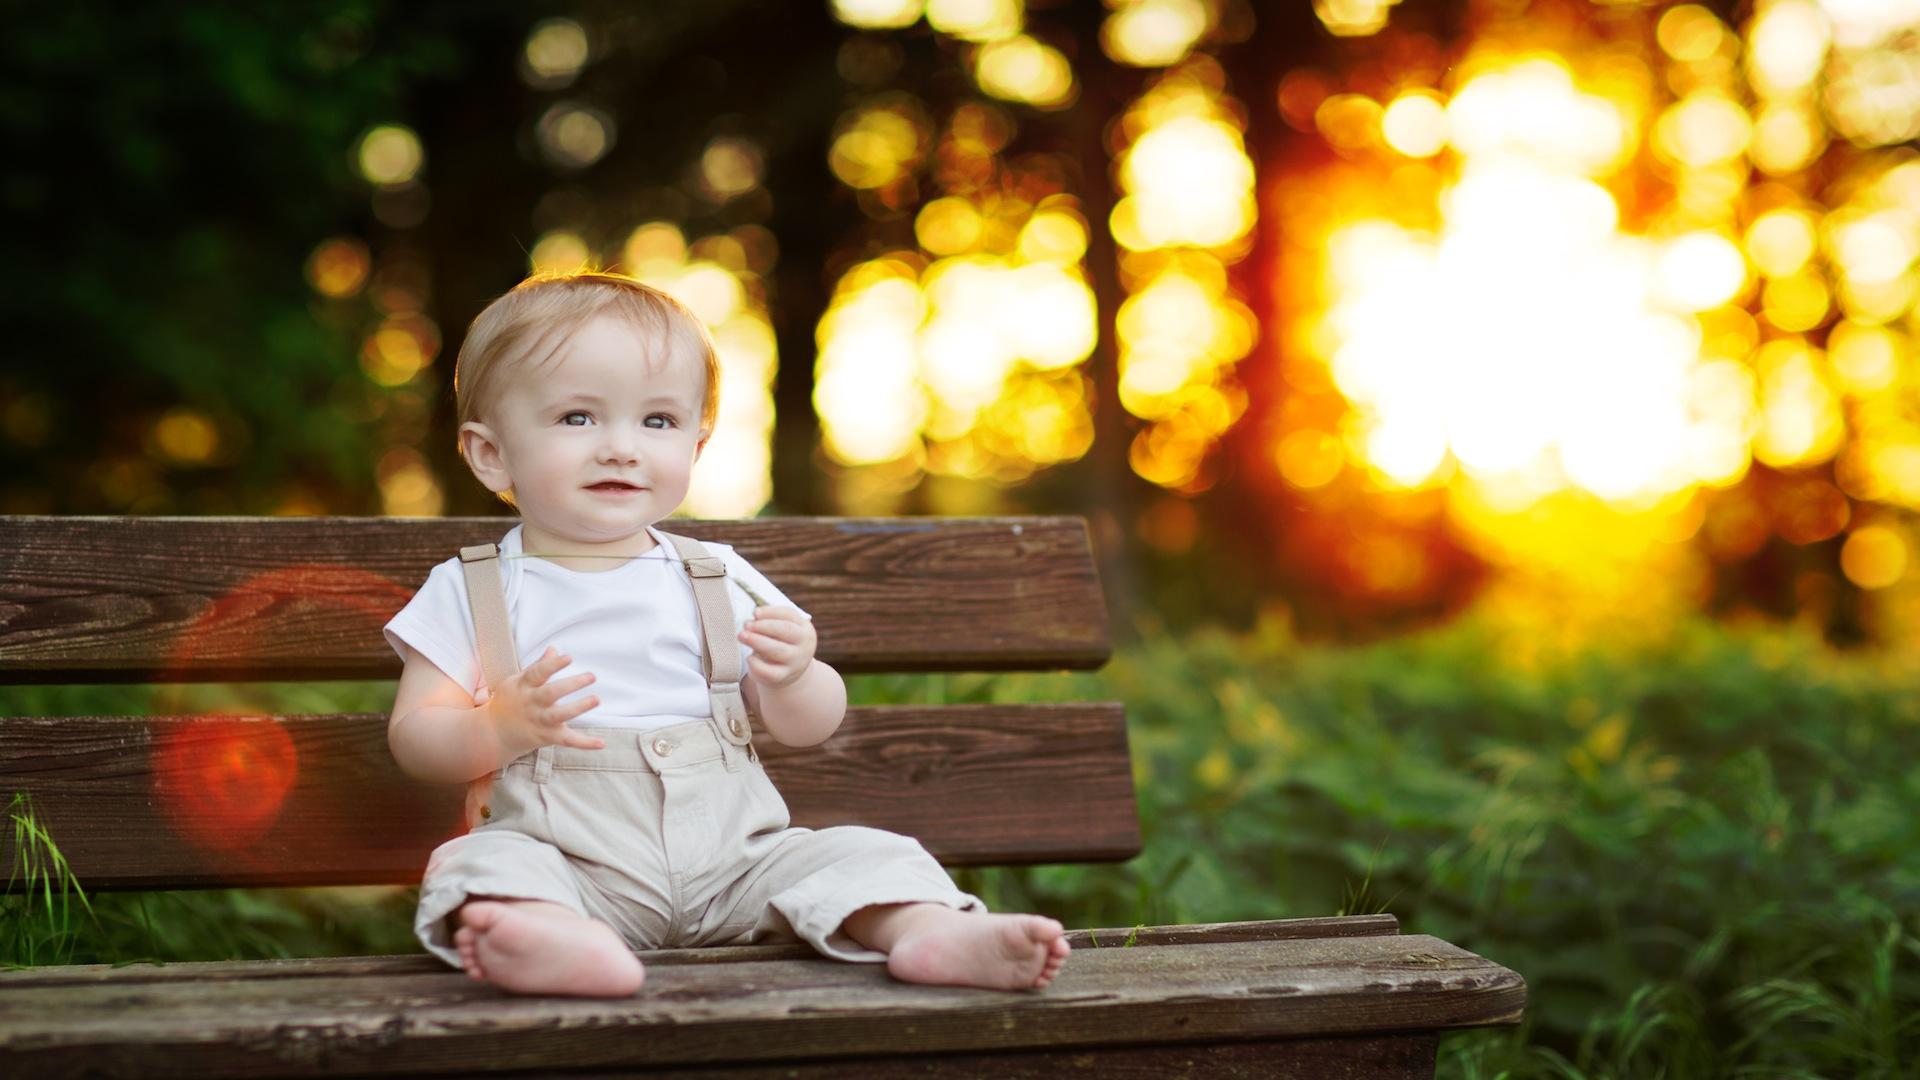 Cute Baby Girl Child Wallpaper 45 Small And Cute Baby Wallpaper Download For Free